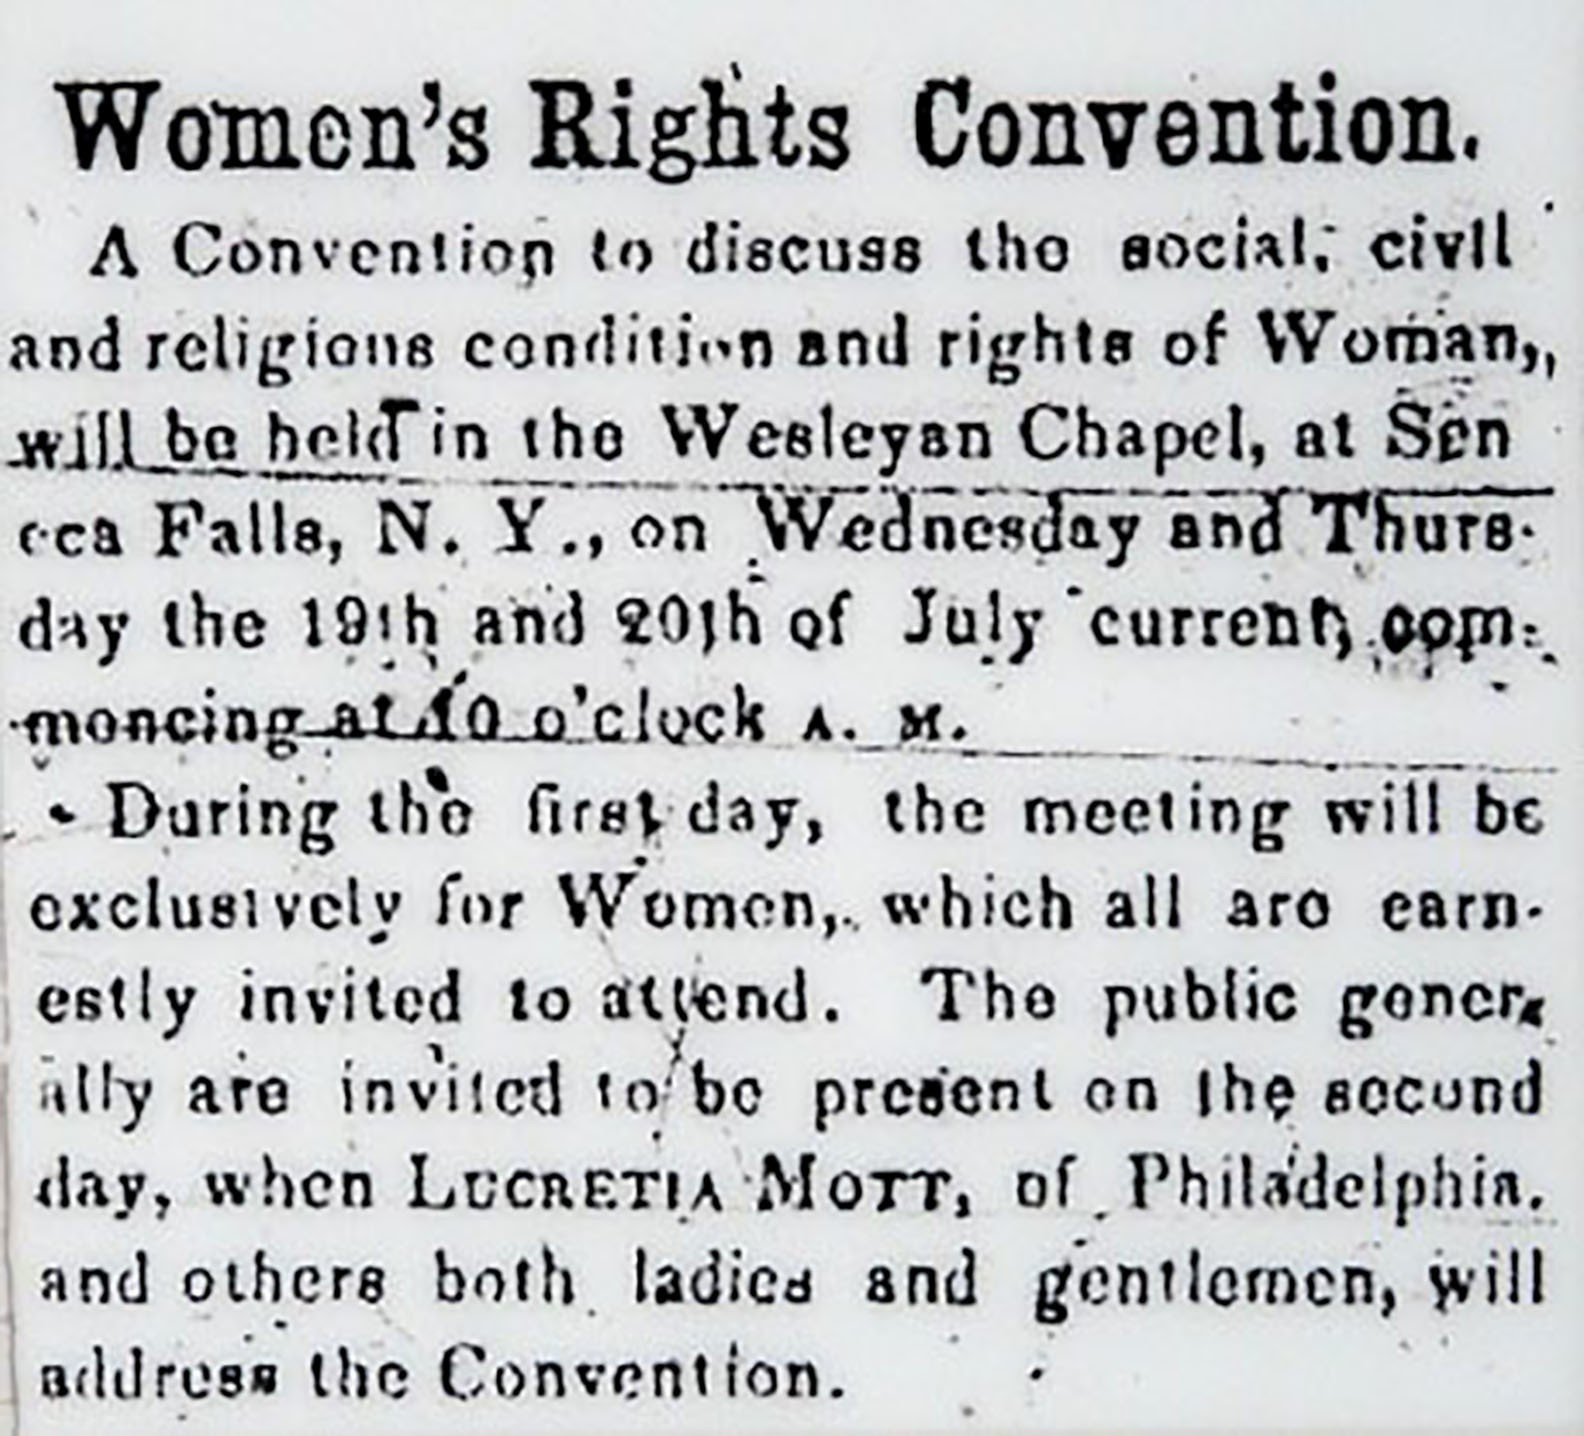 Newspaper clipping on the New York Women's Rights Convention in 1848.